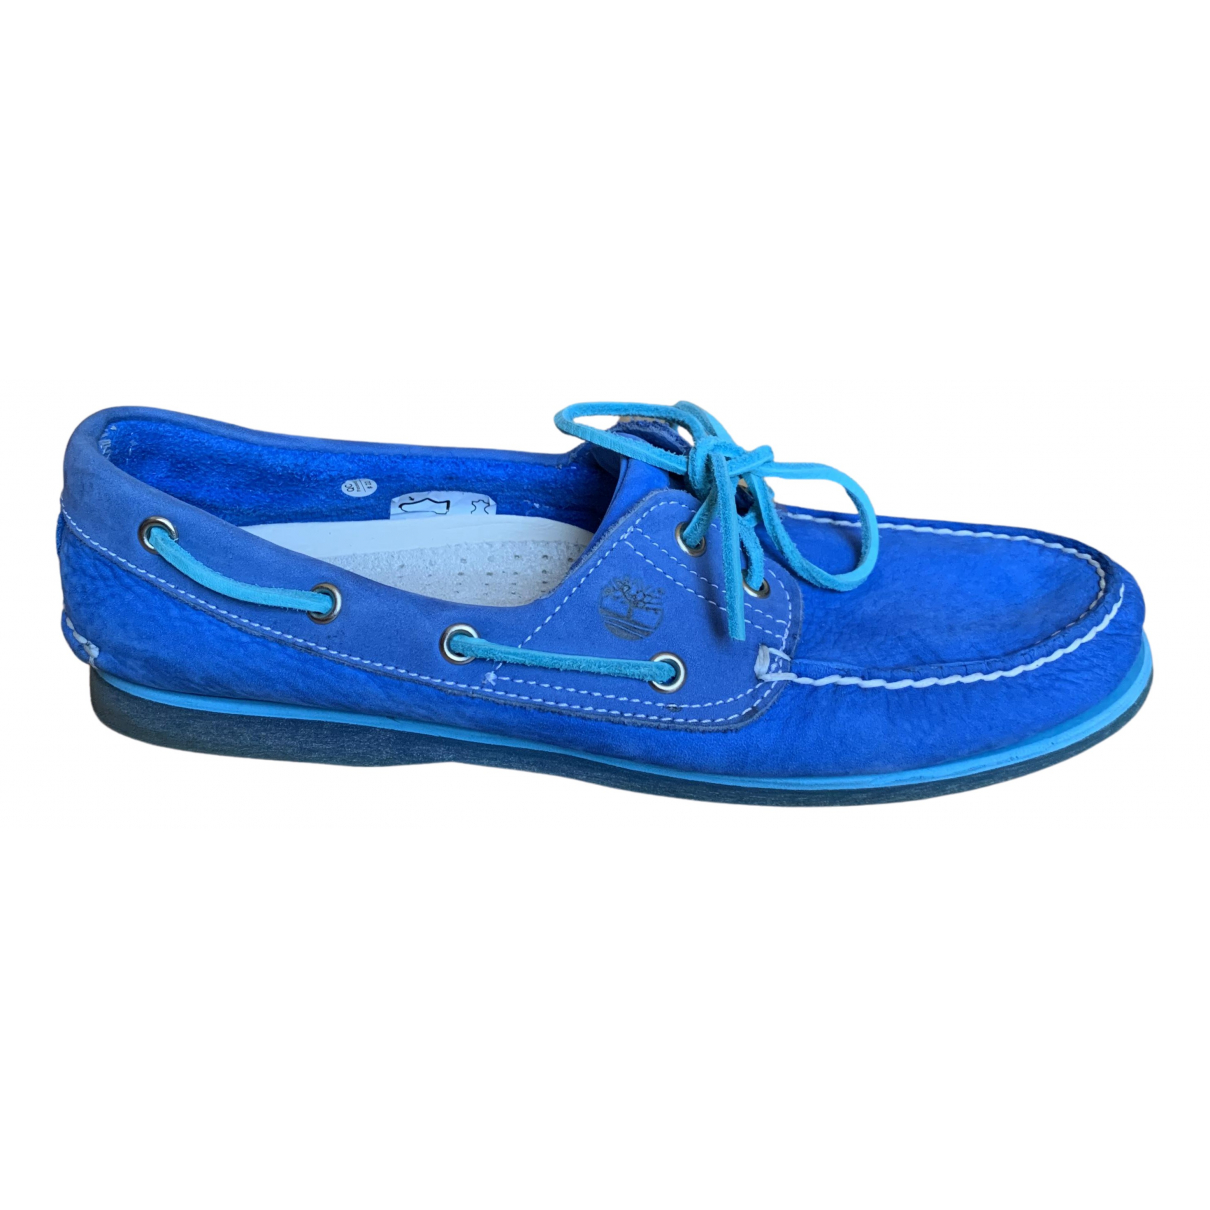 Timberland N Blue Leather Flats for Men 9 US